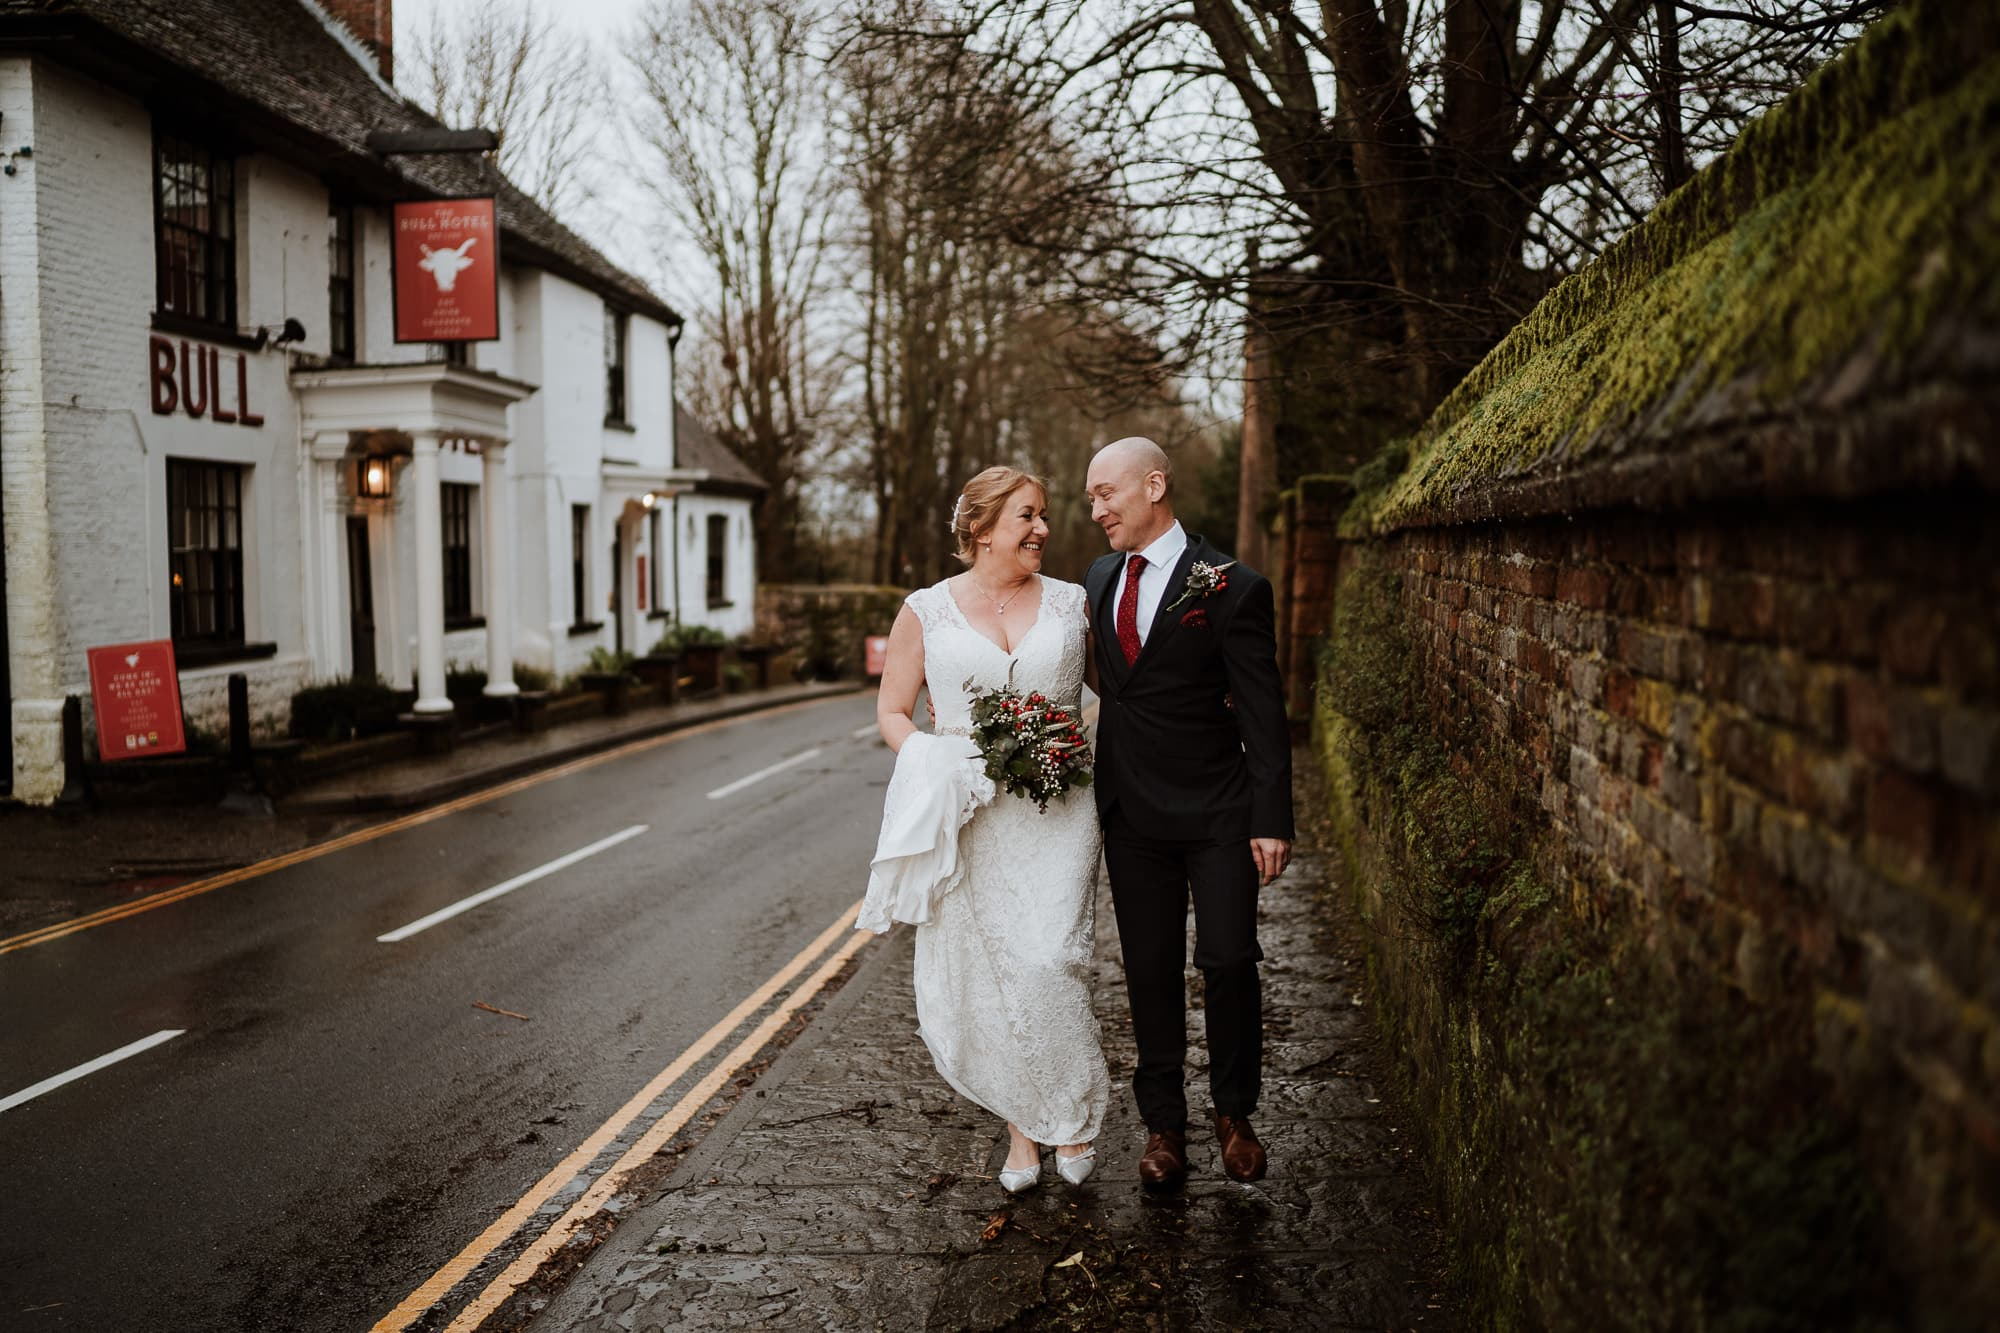 Couple smiling and walking together at their Wedding at The Bull Hotel, Wrotham